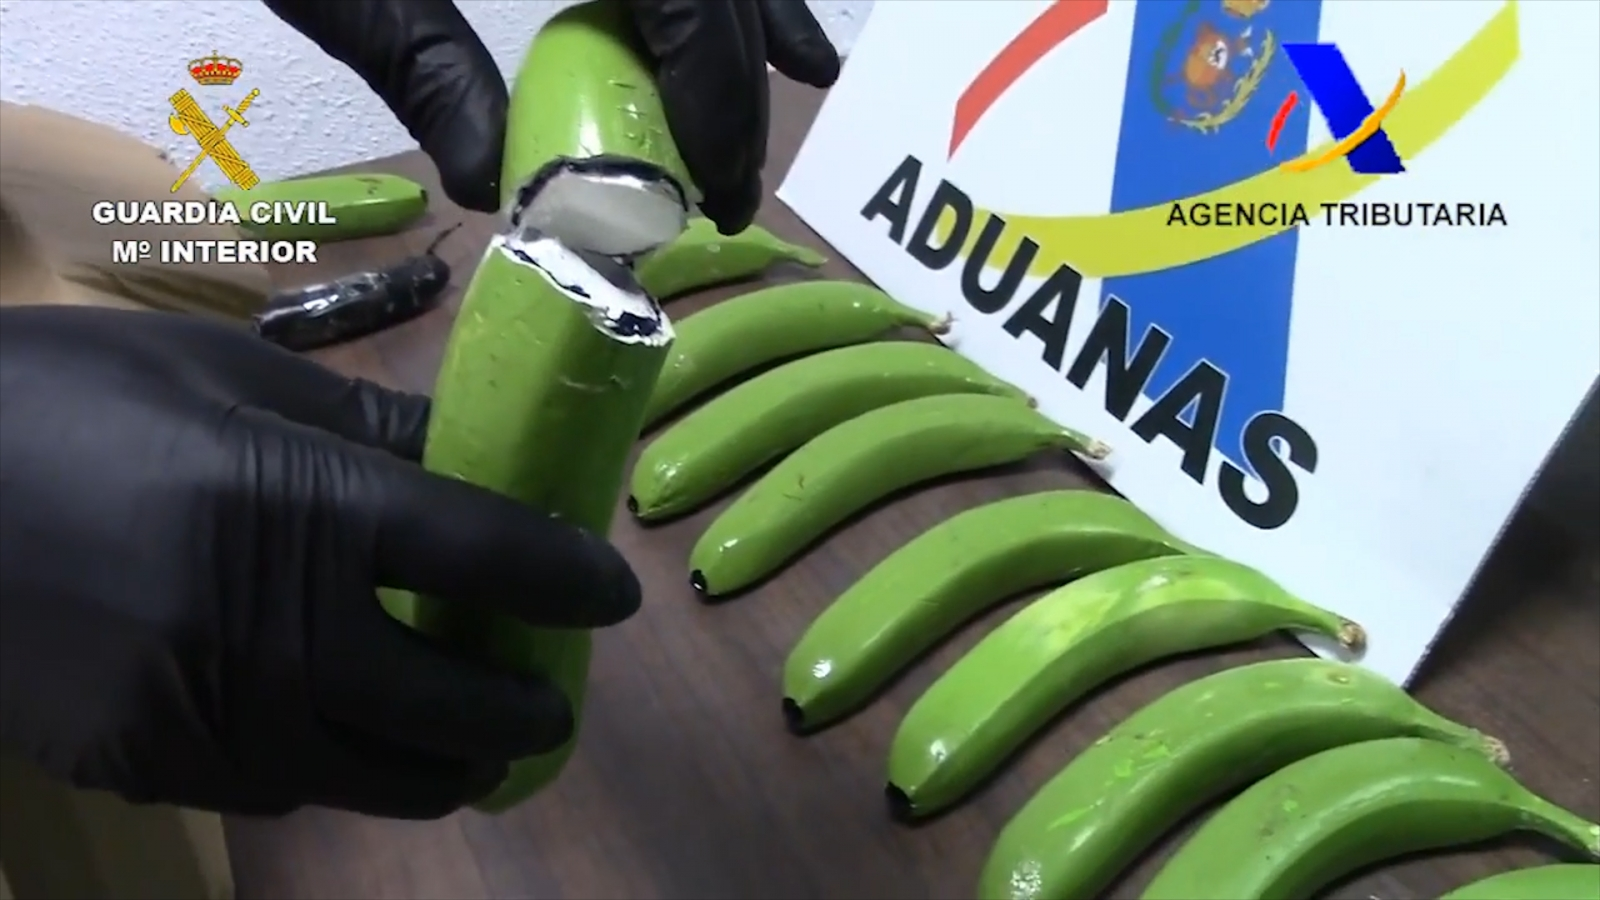 Spanish police seize £12m worth of cocaine hidden in fake bananas